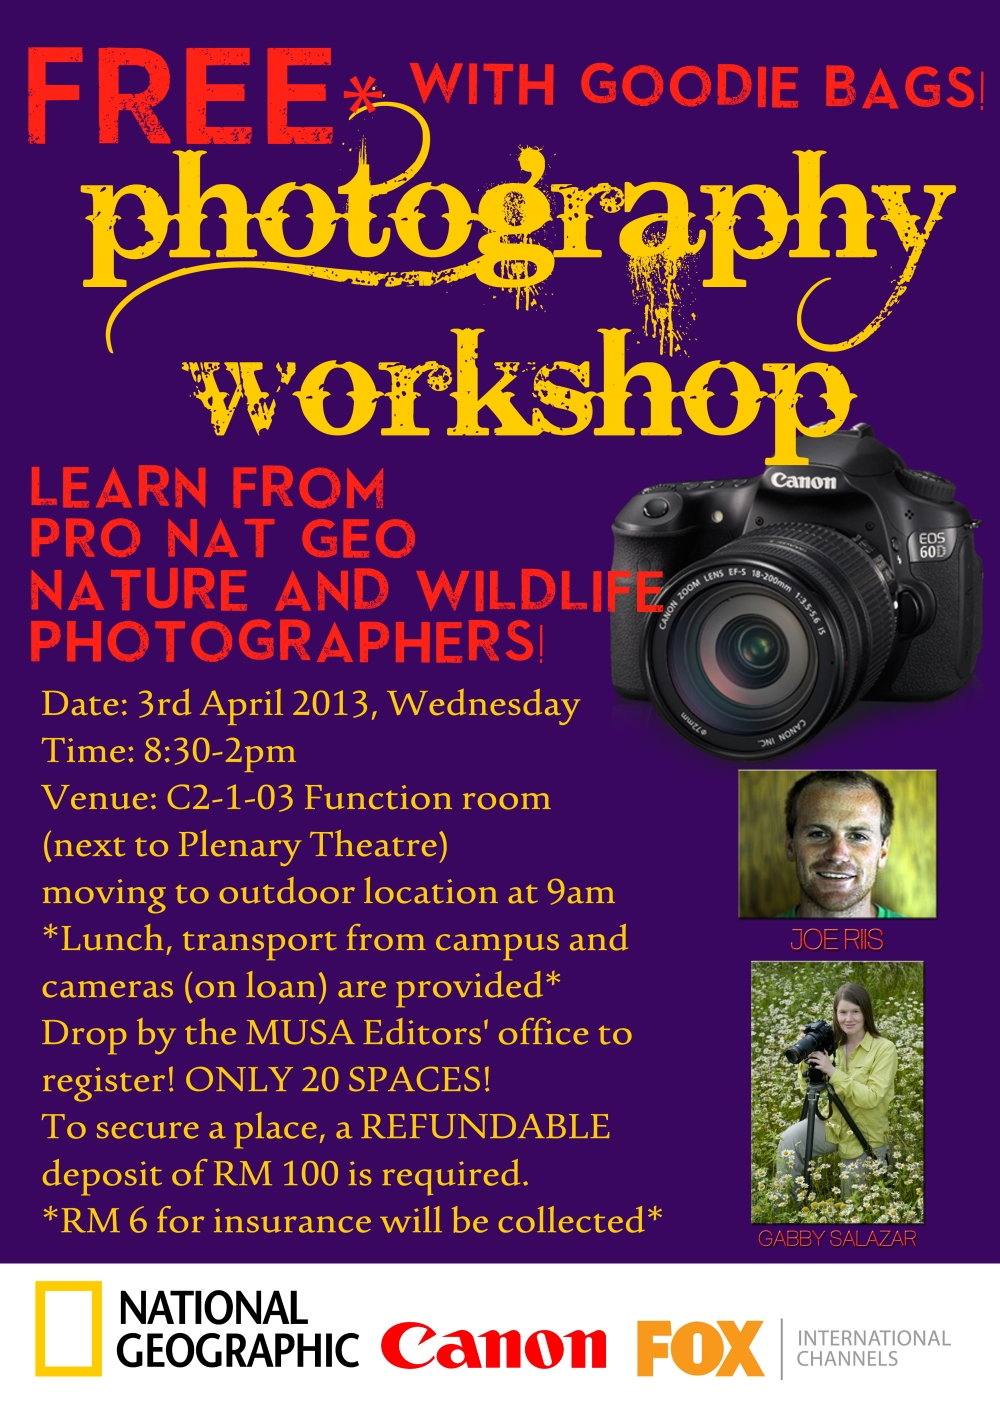 Canon Photo workshop